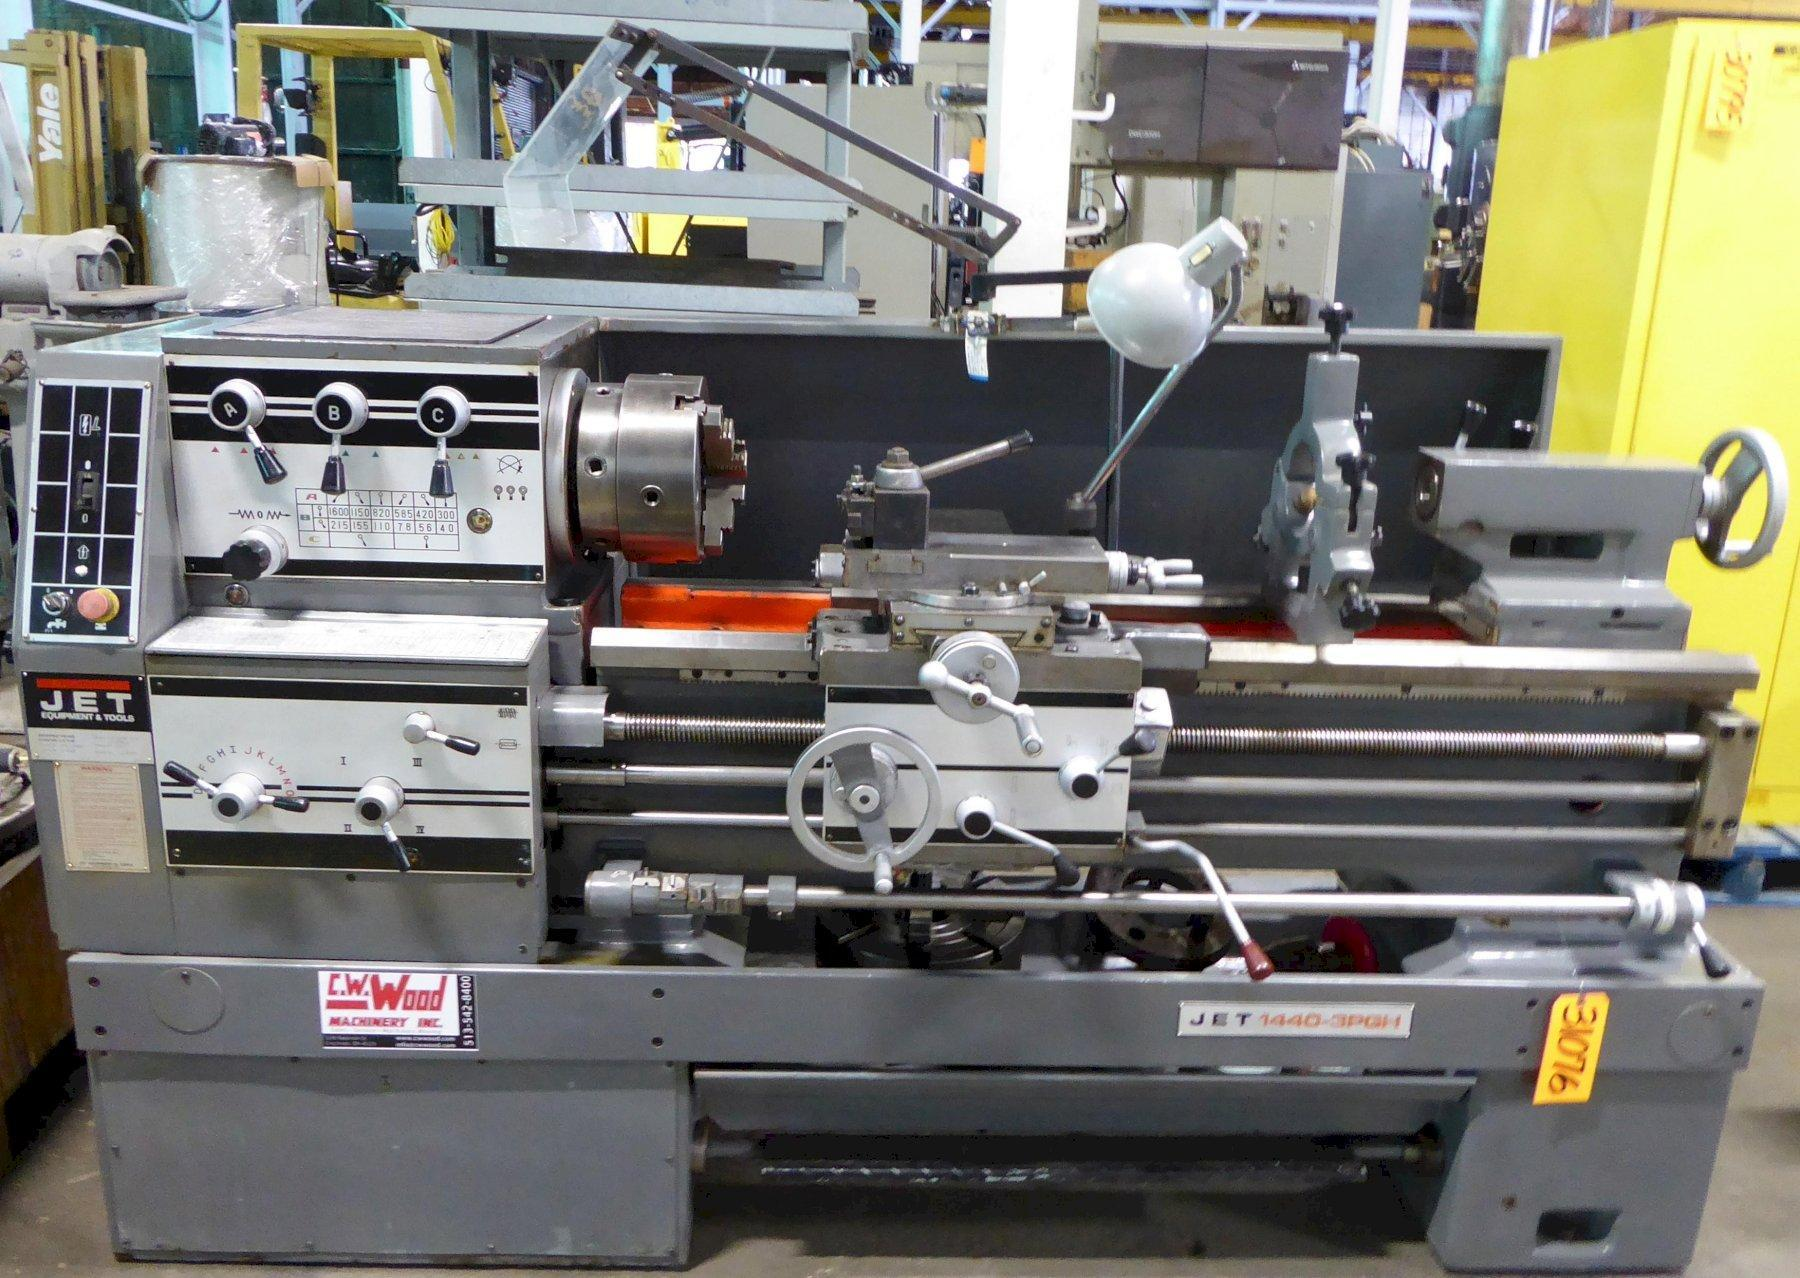 14″ x 40″ Jet Lathe, Gear Head, Gap Bed, Well Tooled, Excellent